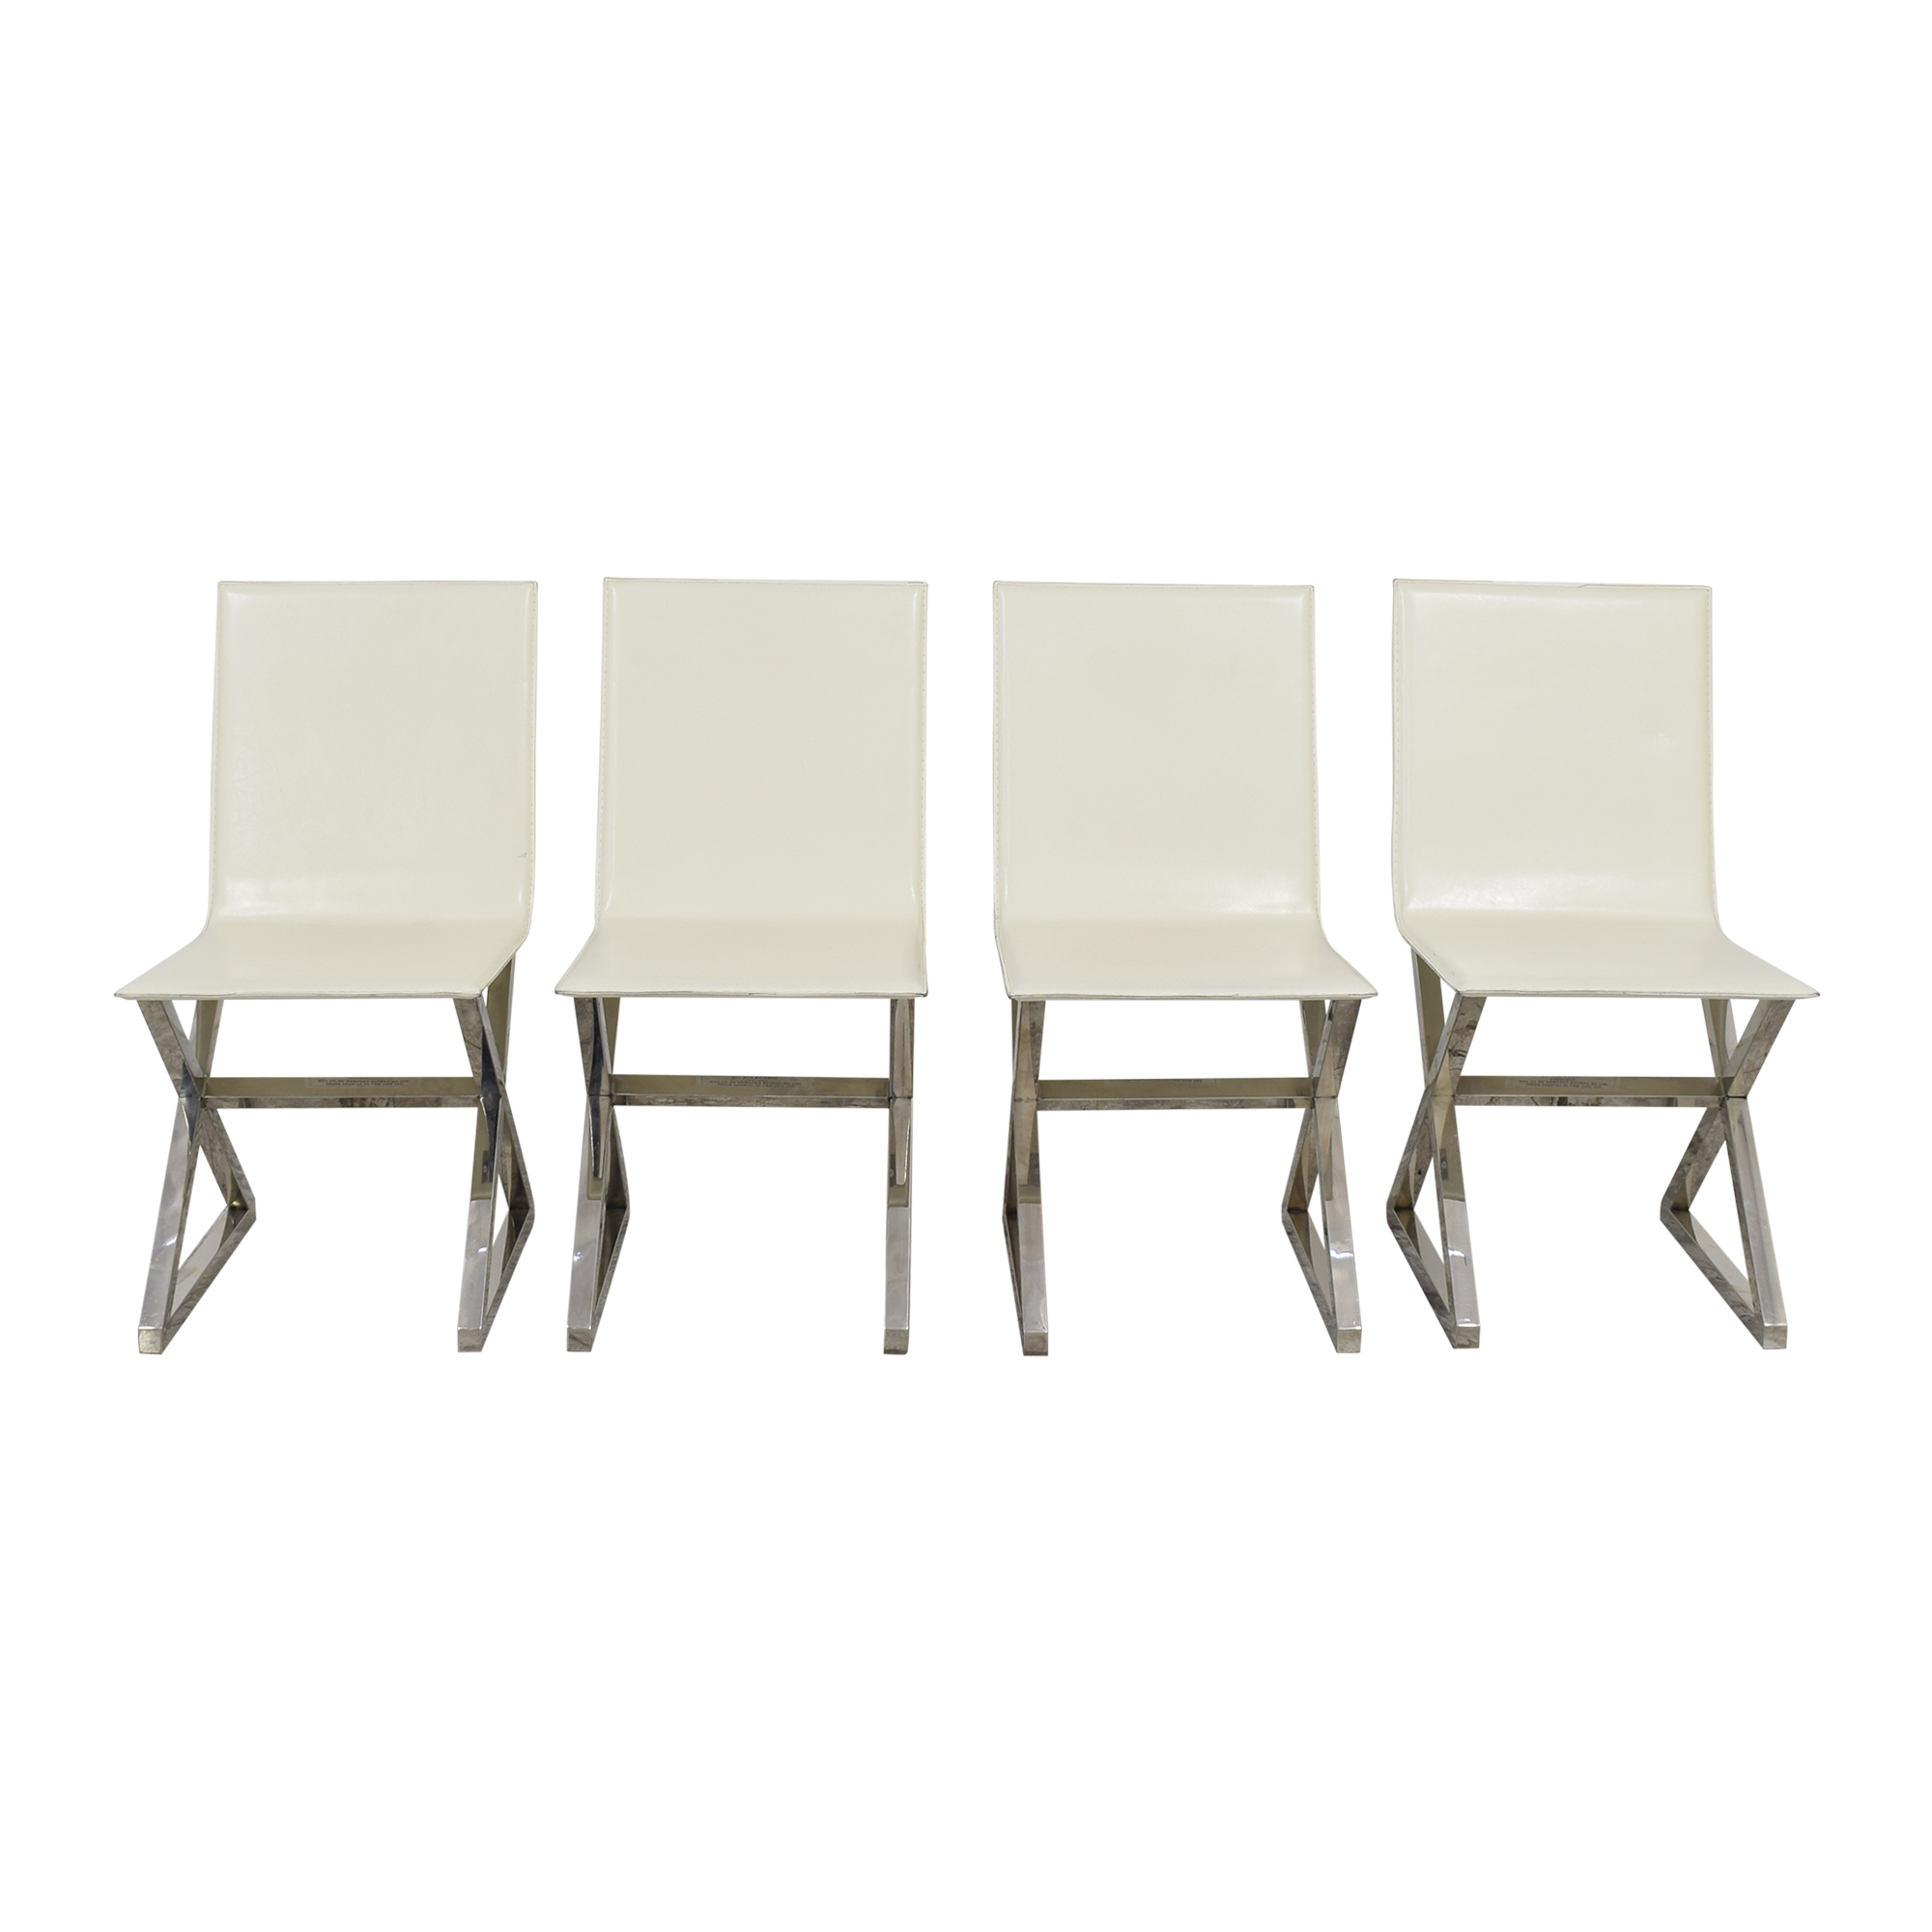 Z Gallerie Z Gallerie Axis Dining Chairs off white & silver